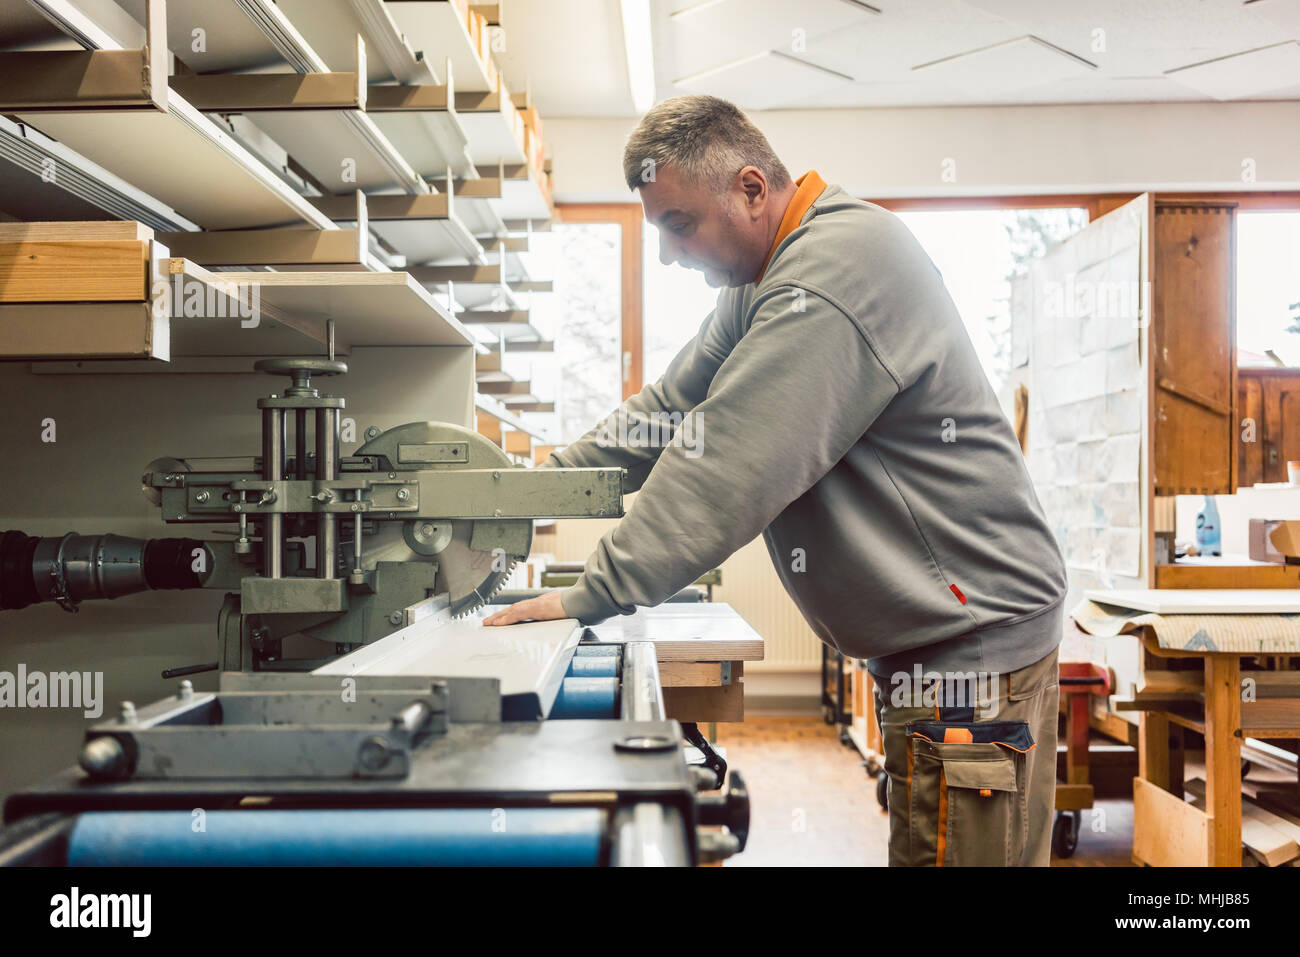 Tinner working on metal sheets in his workshop - Stock Image